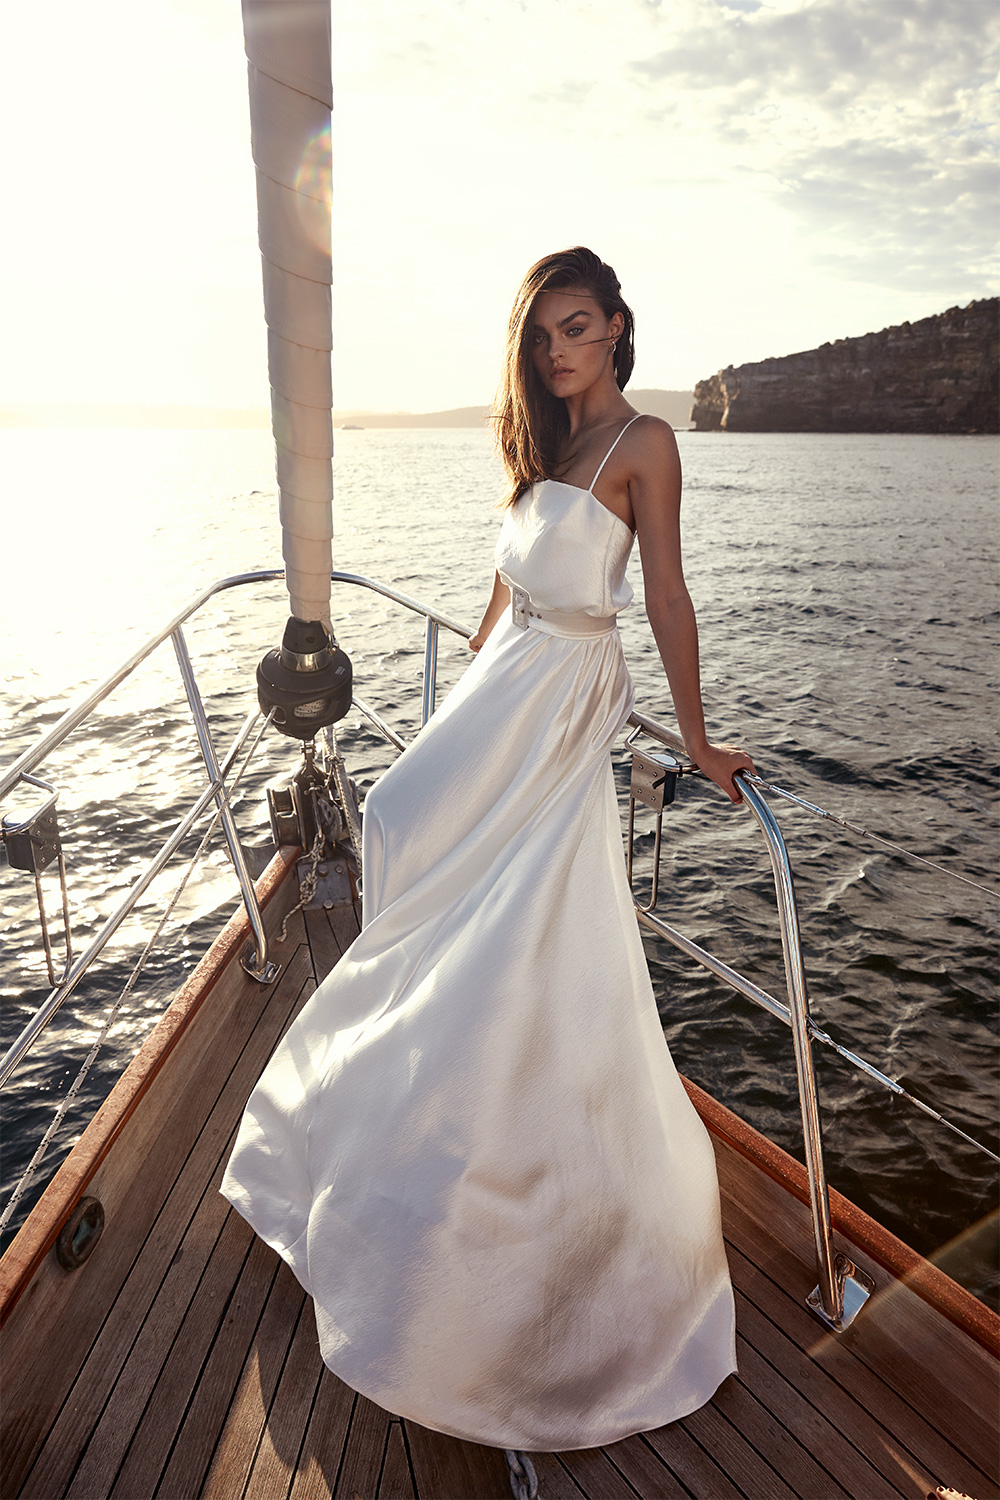 One-Day-bridal-wedding-dress_20